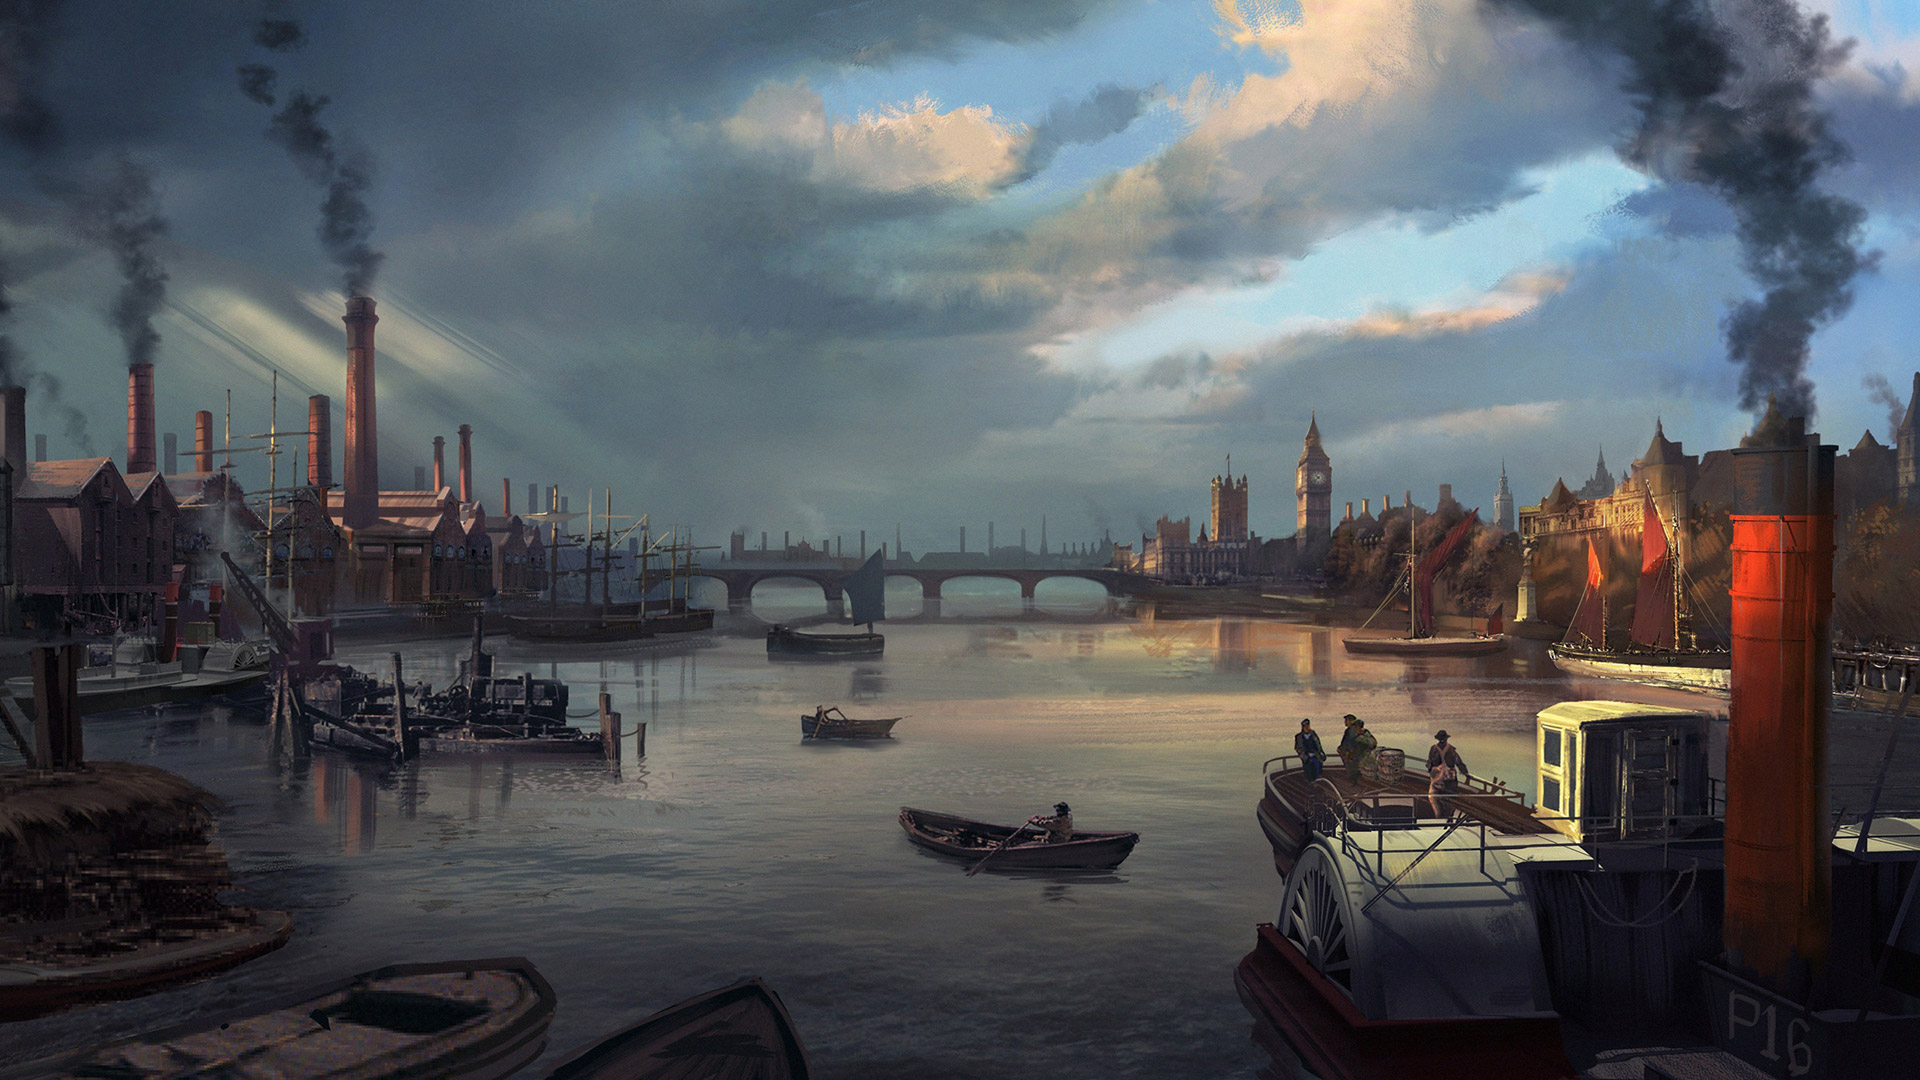 Assassin's Creed: Syndicate Wallpaper in 1920x1080